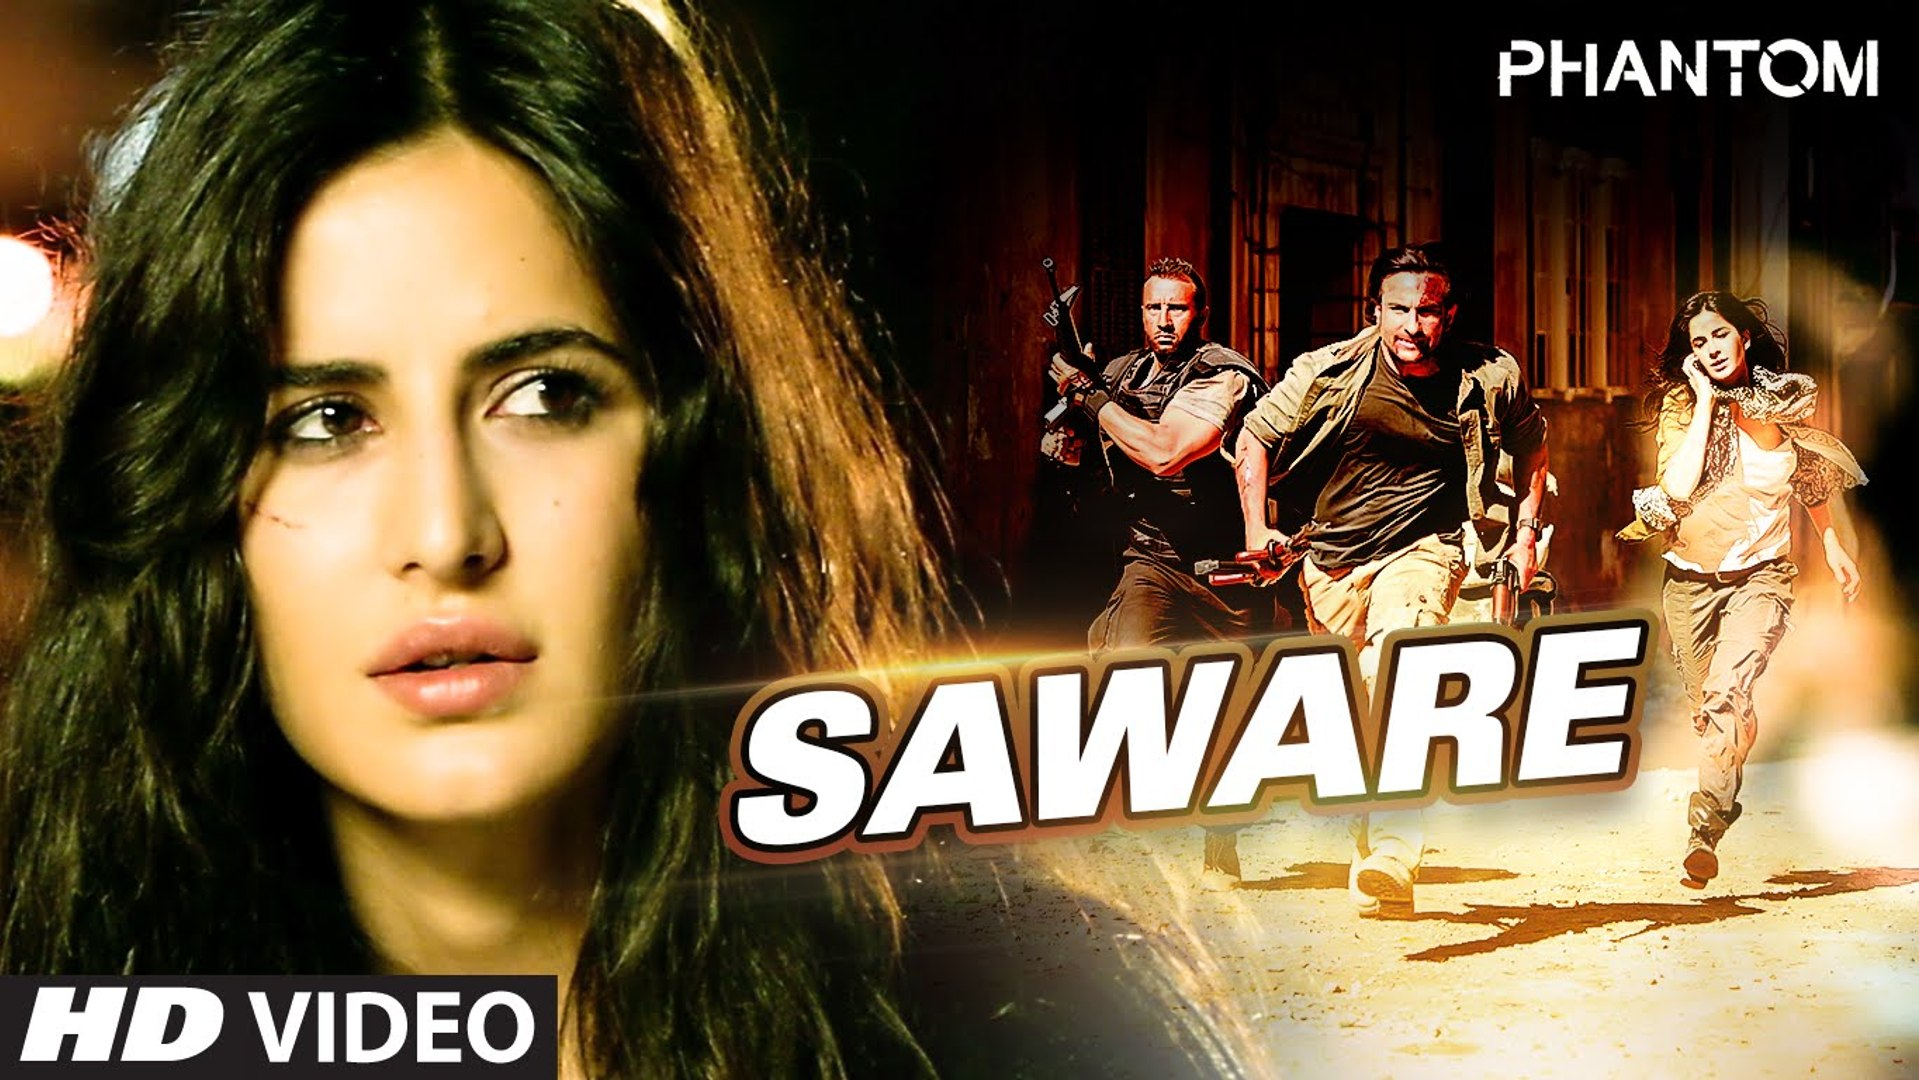 Saware FULL VIDEO Song - Arijit Singh - Phantom